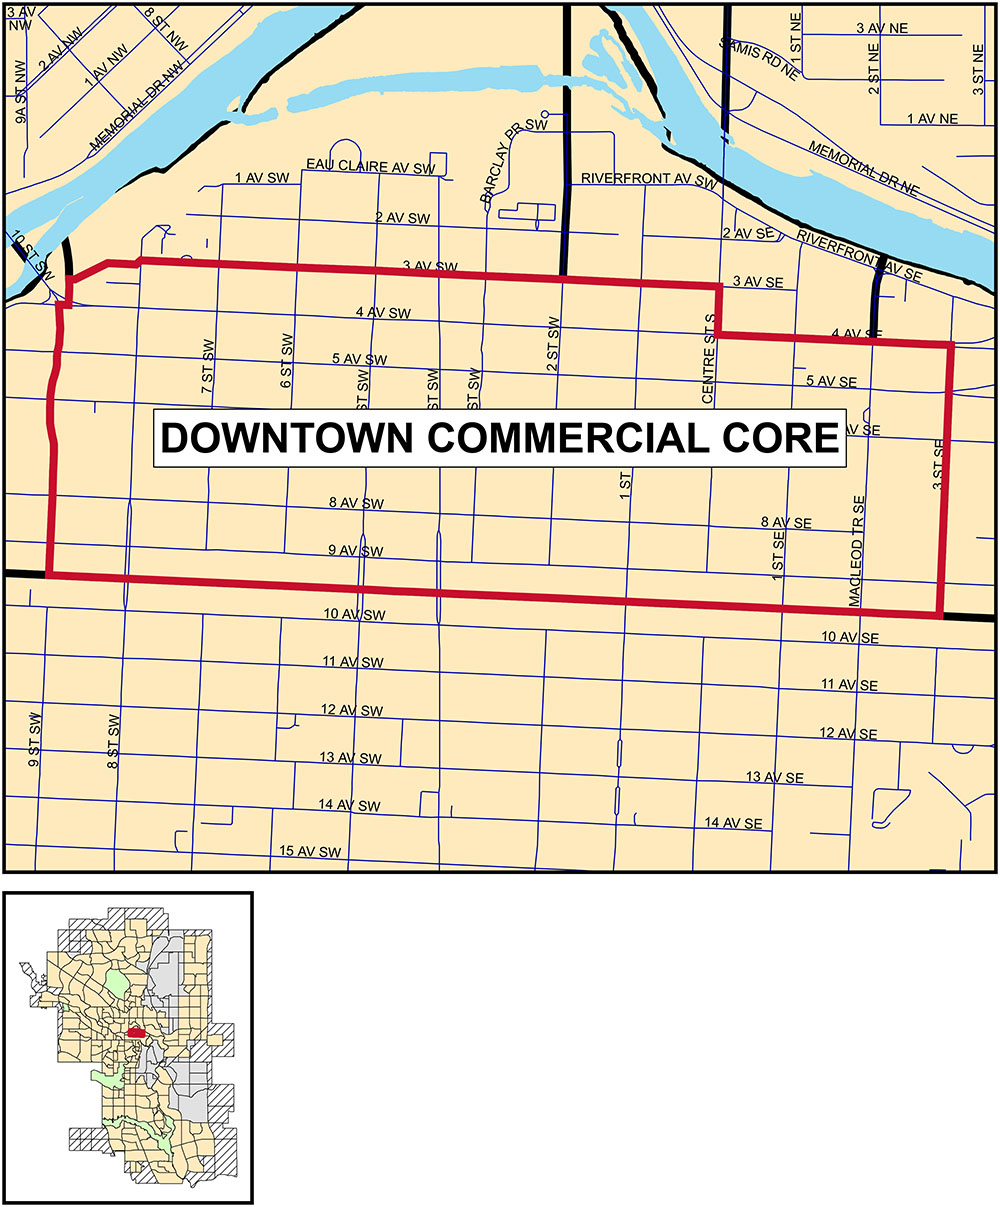 Downtown Commercial Core map